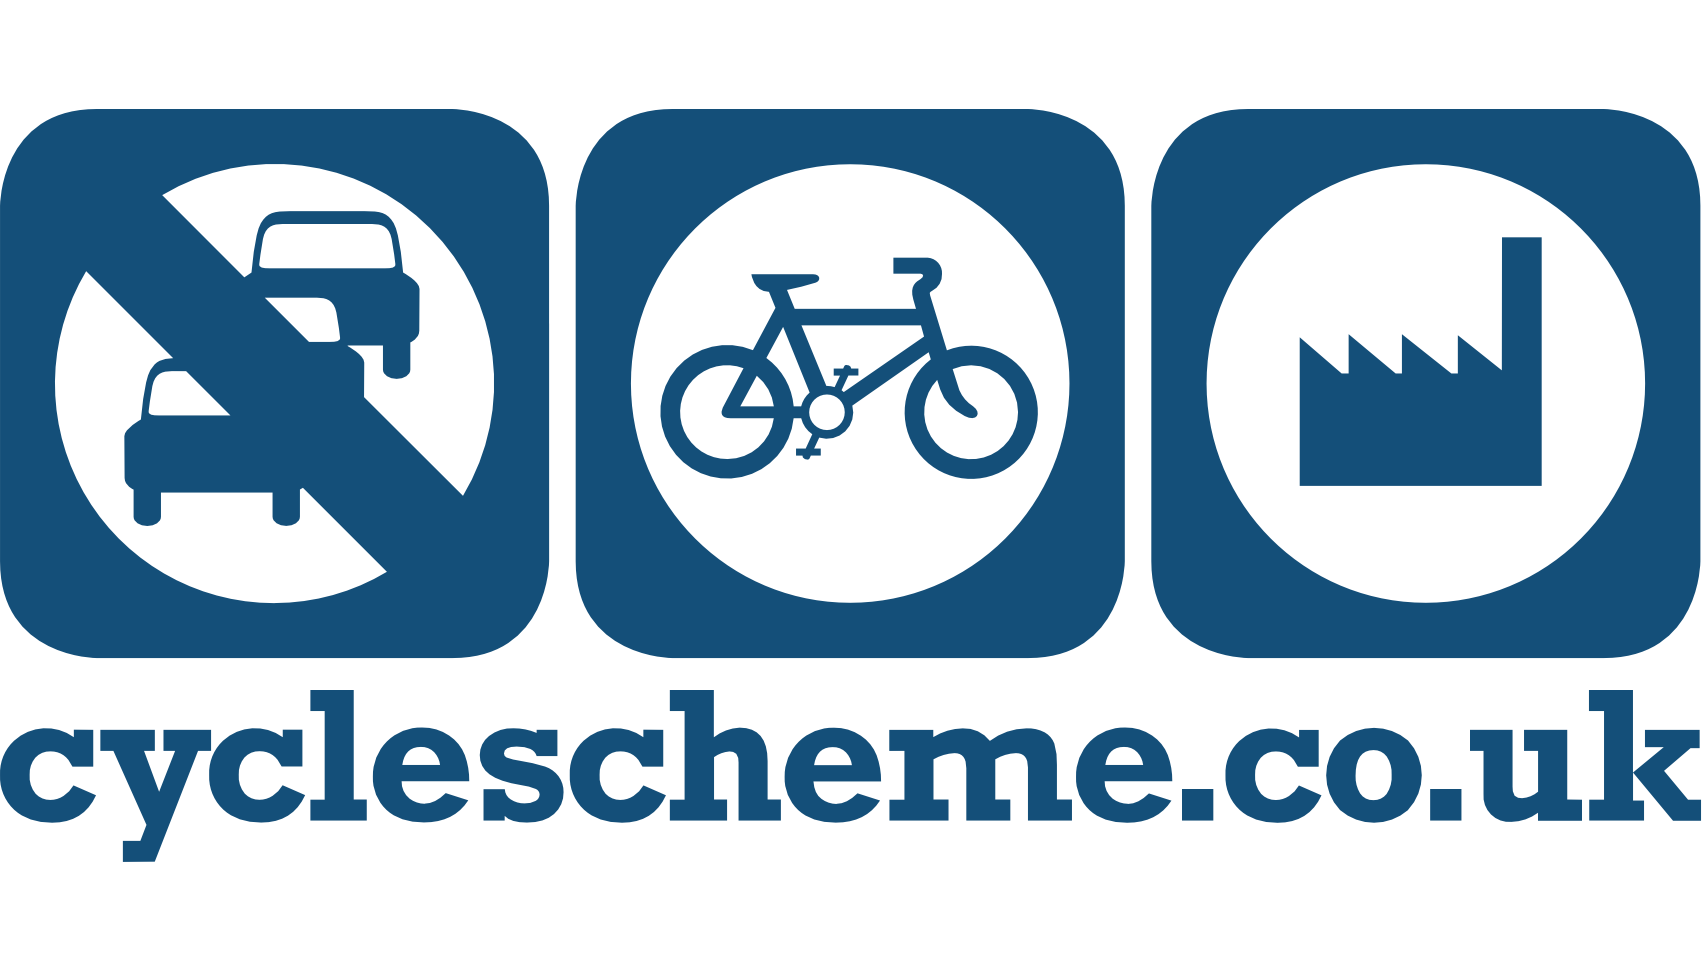 VeloChampion-cyclescheme